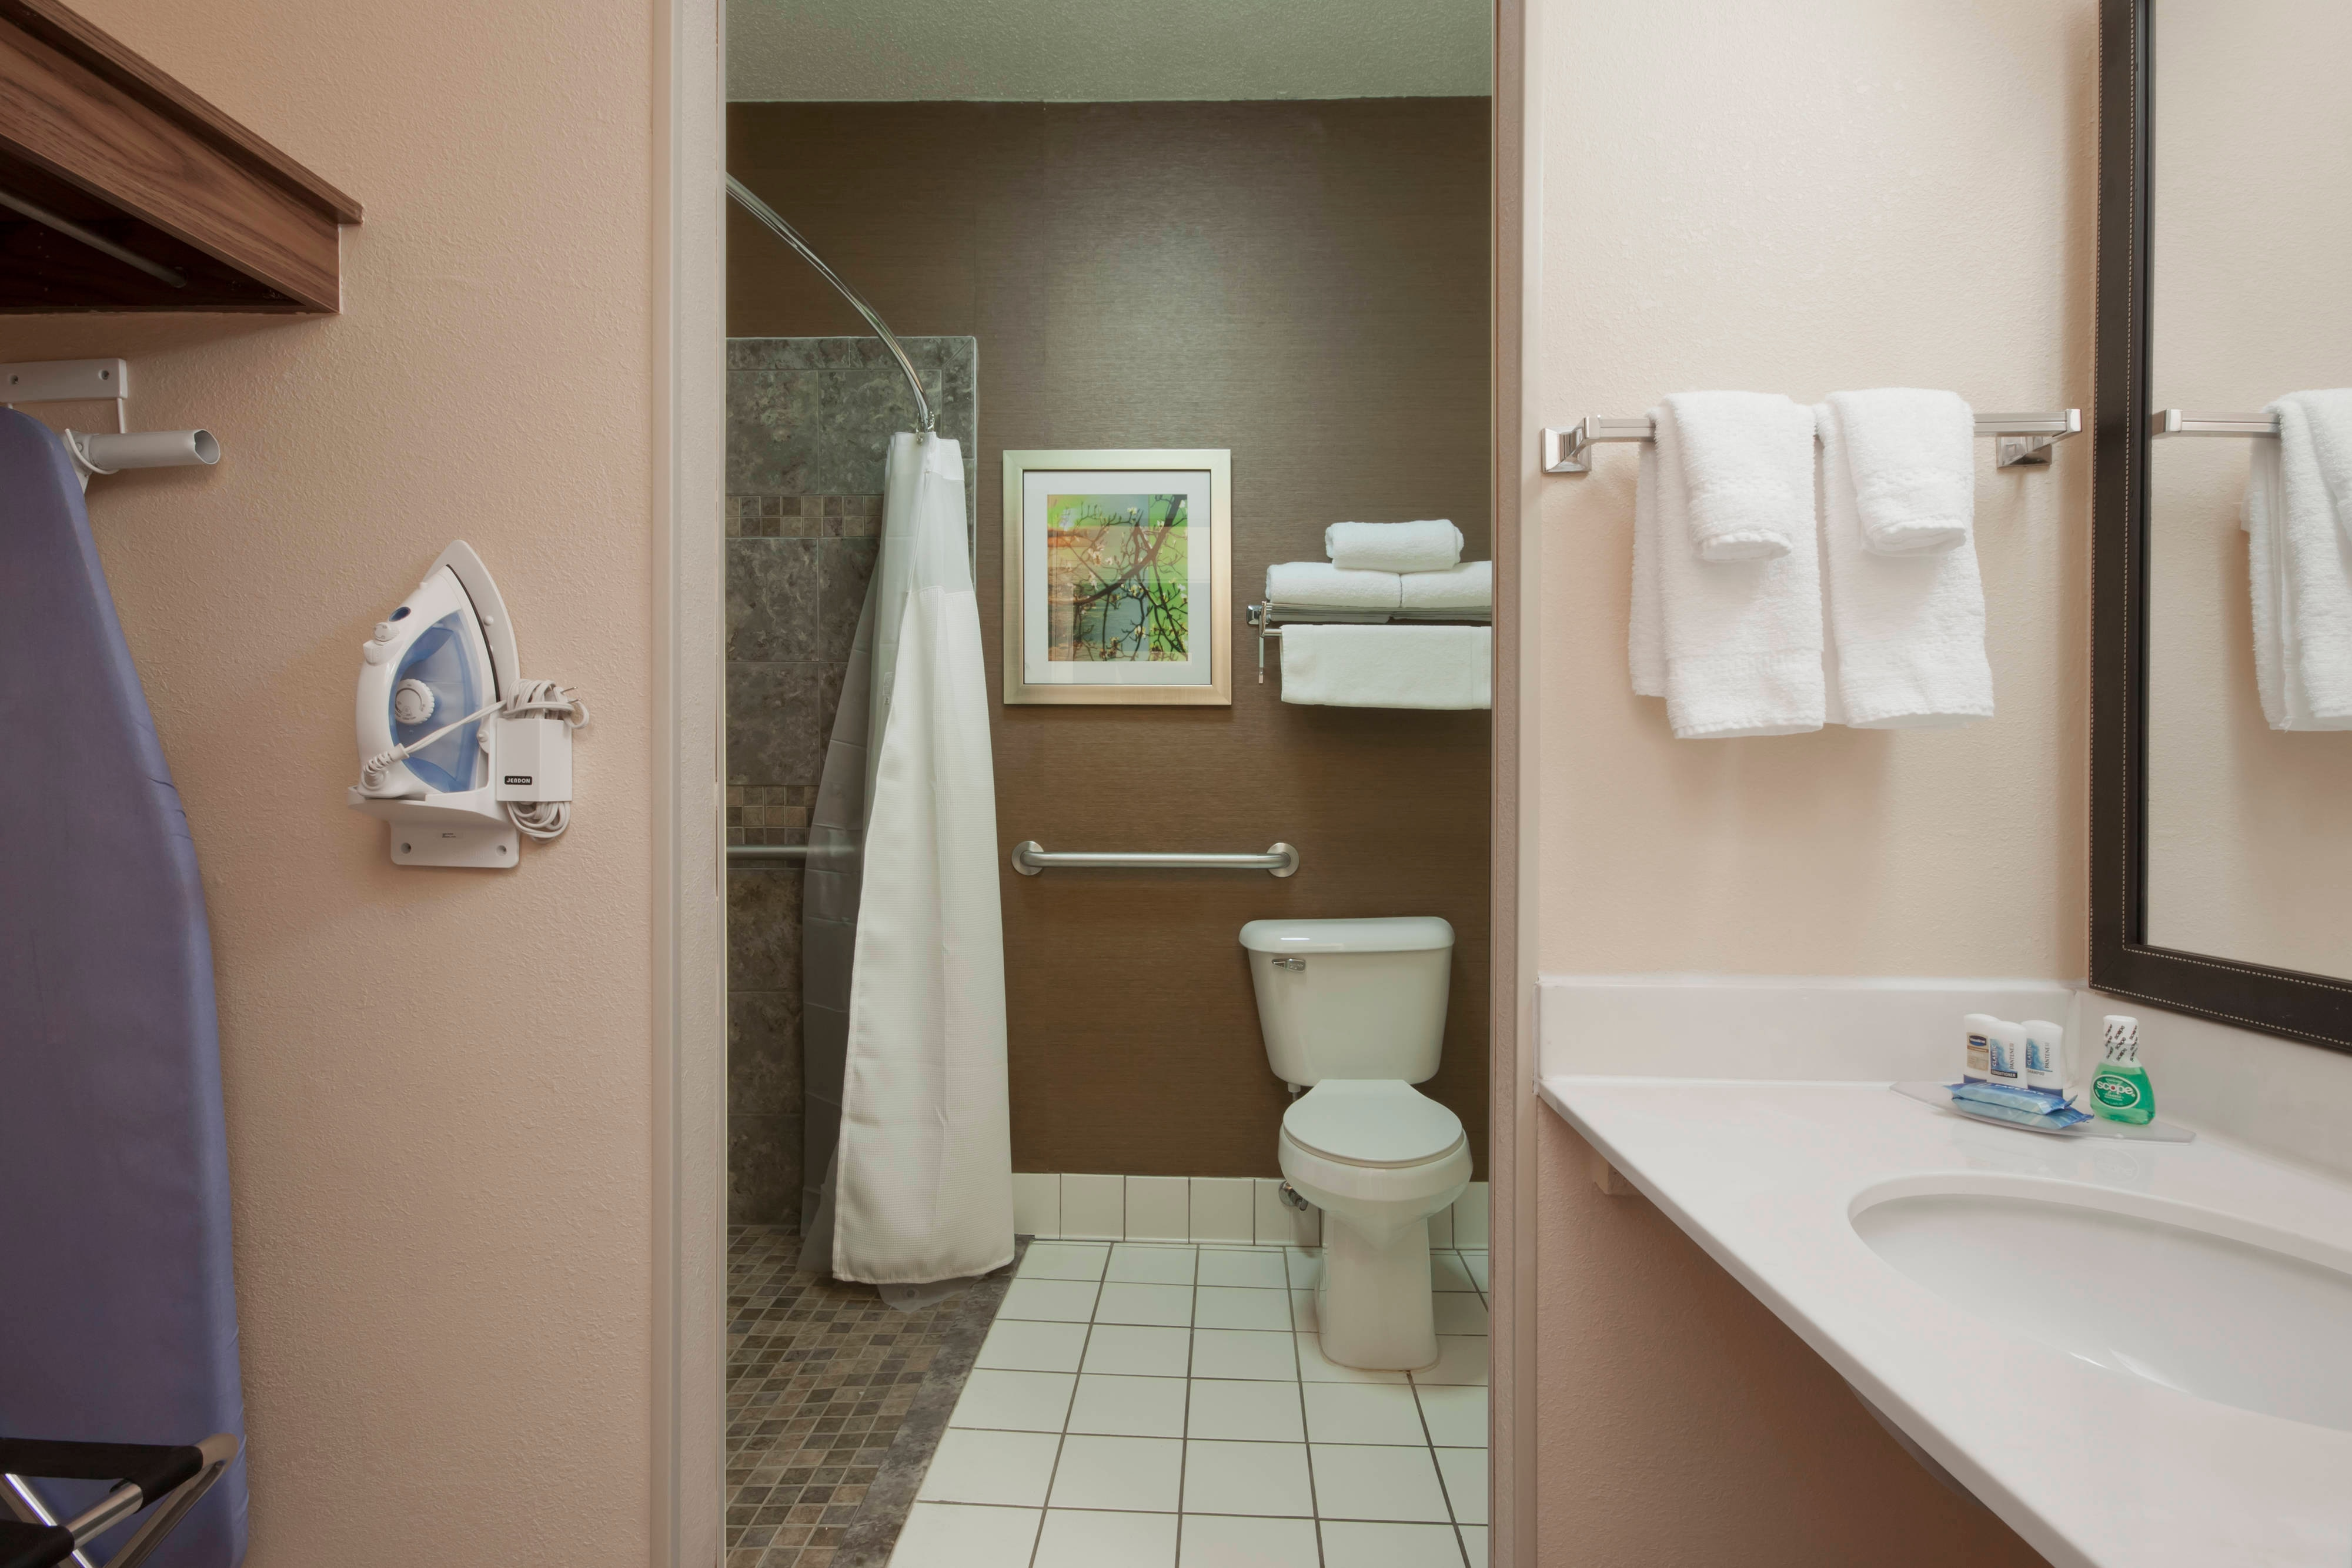 Minot ND Hotel Accessible Bathroom